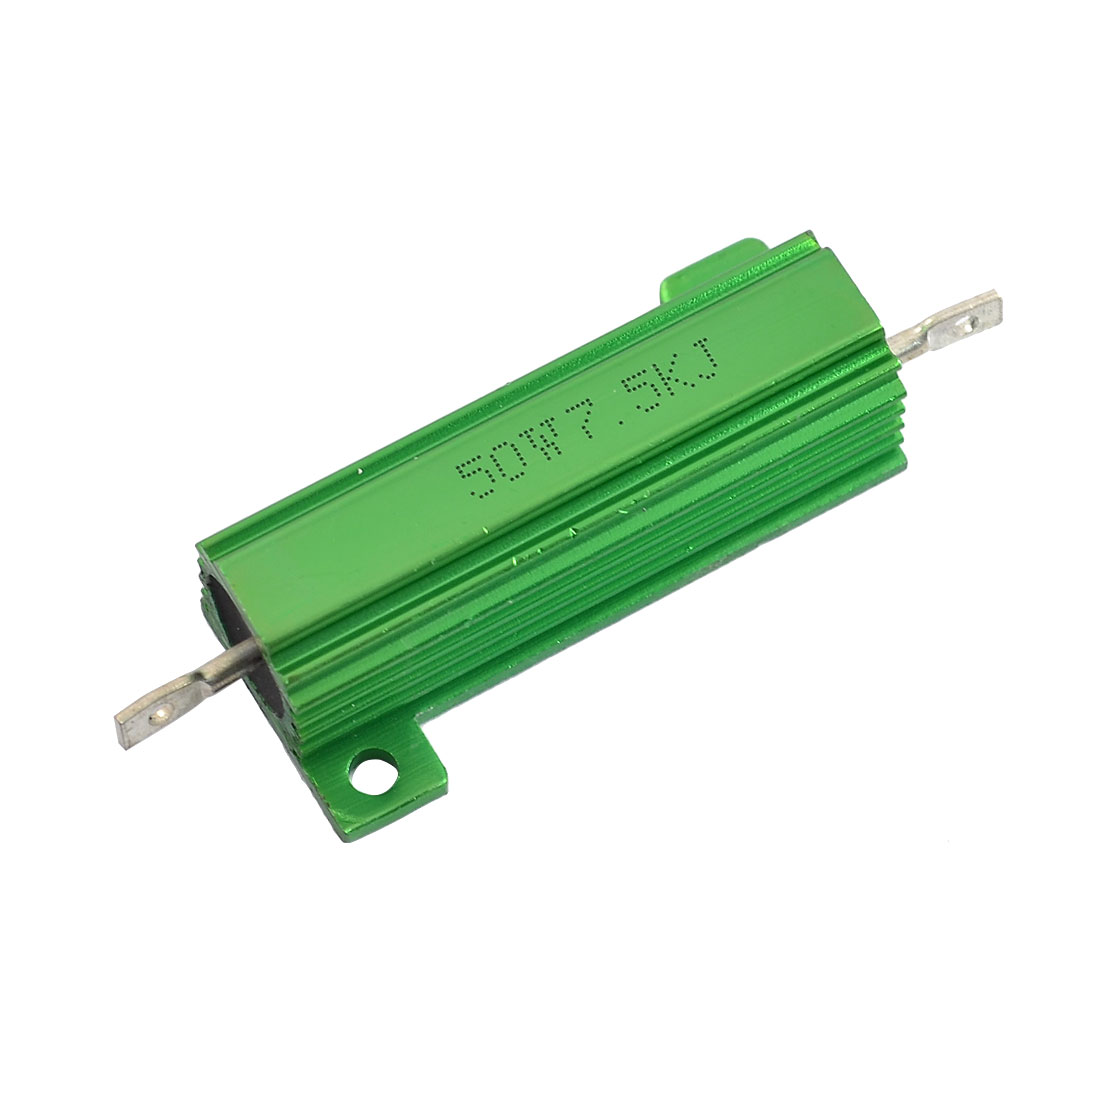 Chassis Mounted 50W 7.5K Ohm 5% Aluminum Shell Wirewound Resistor Green